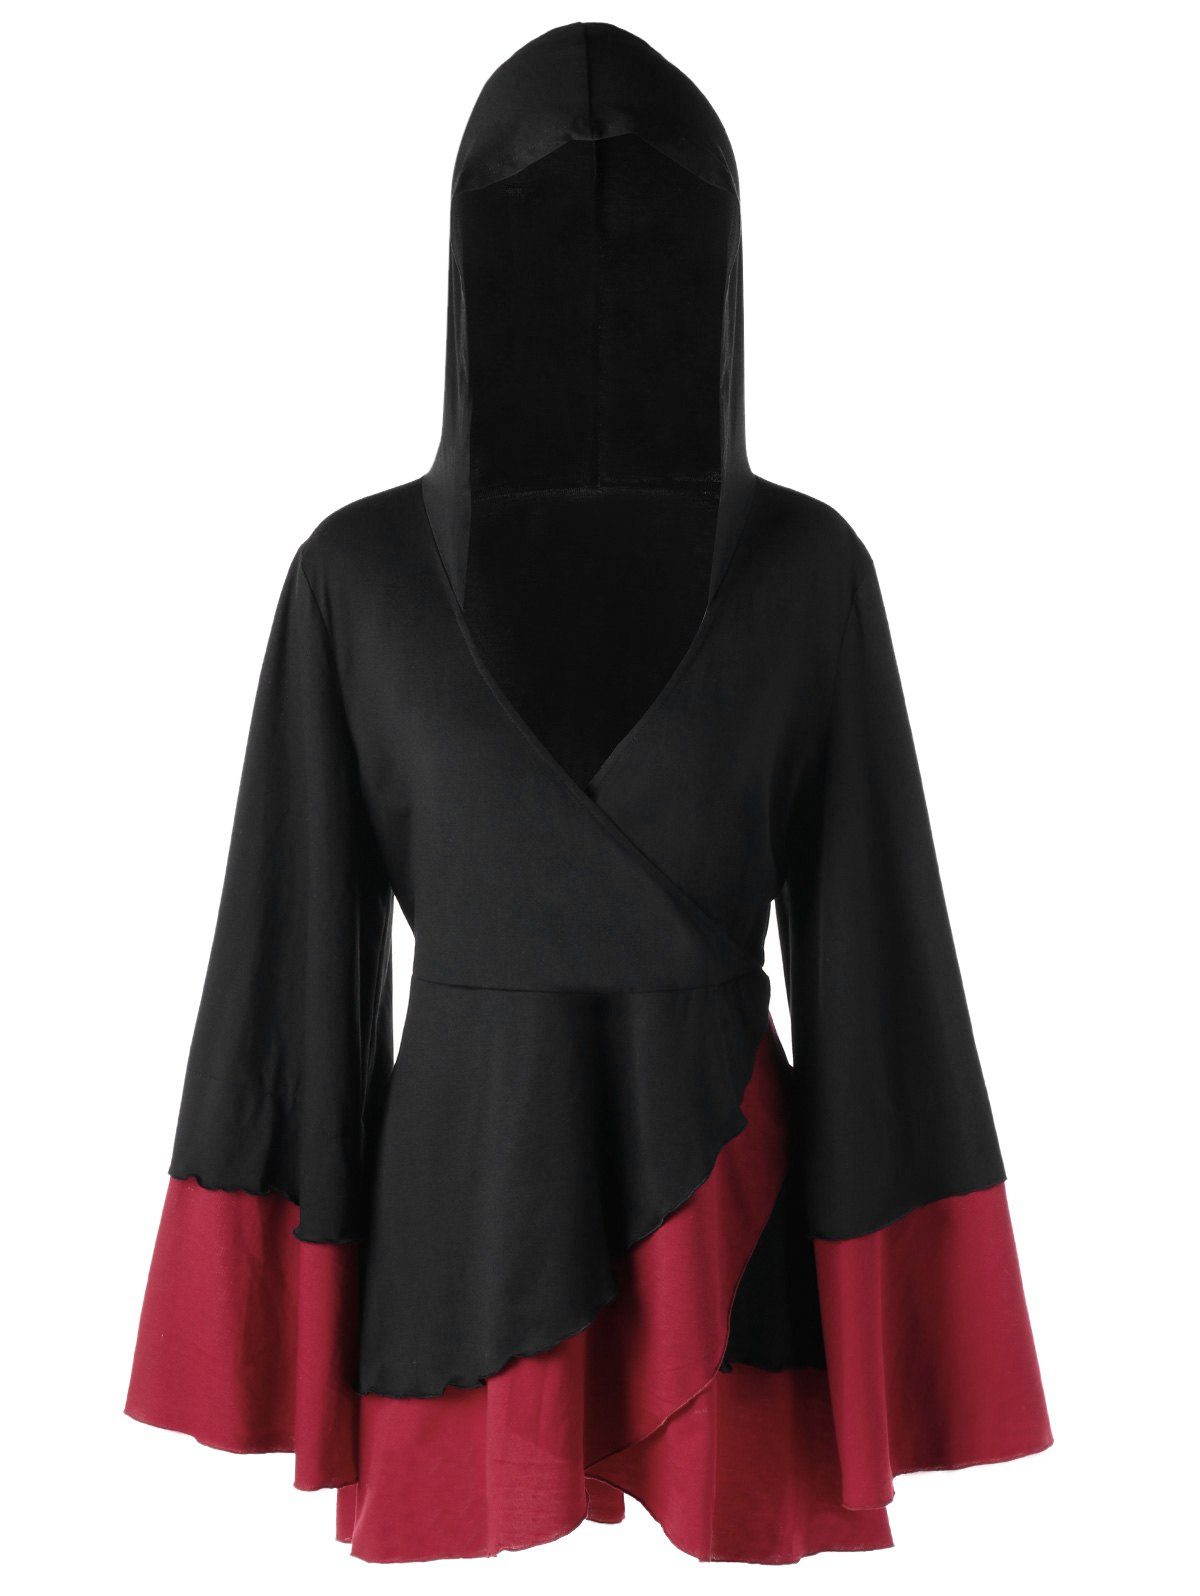 Affordable Plus Size Overlap Two Tone Hooded Top